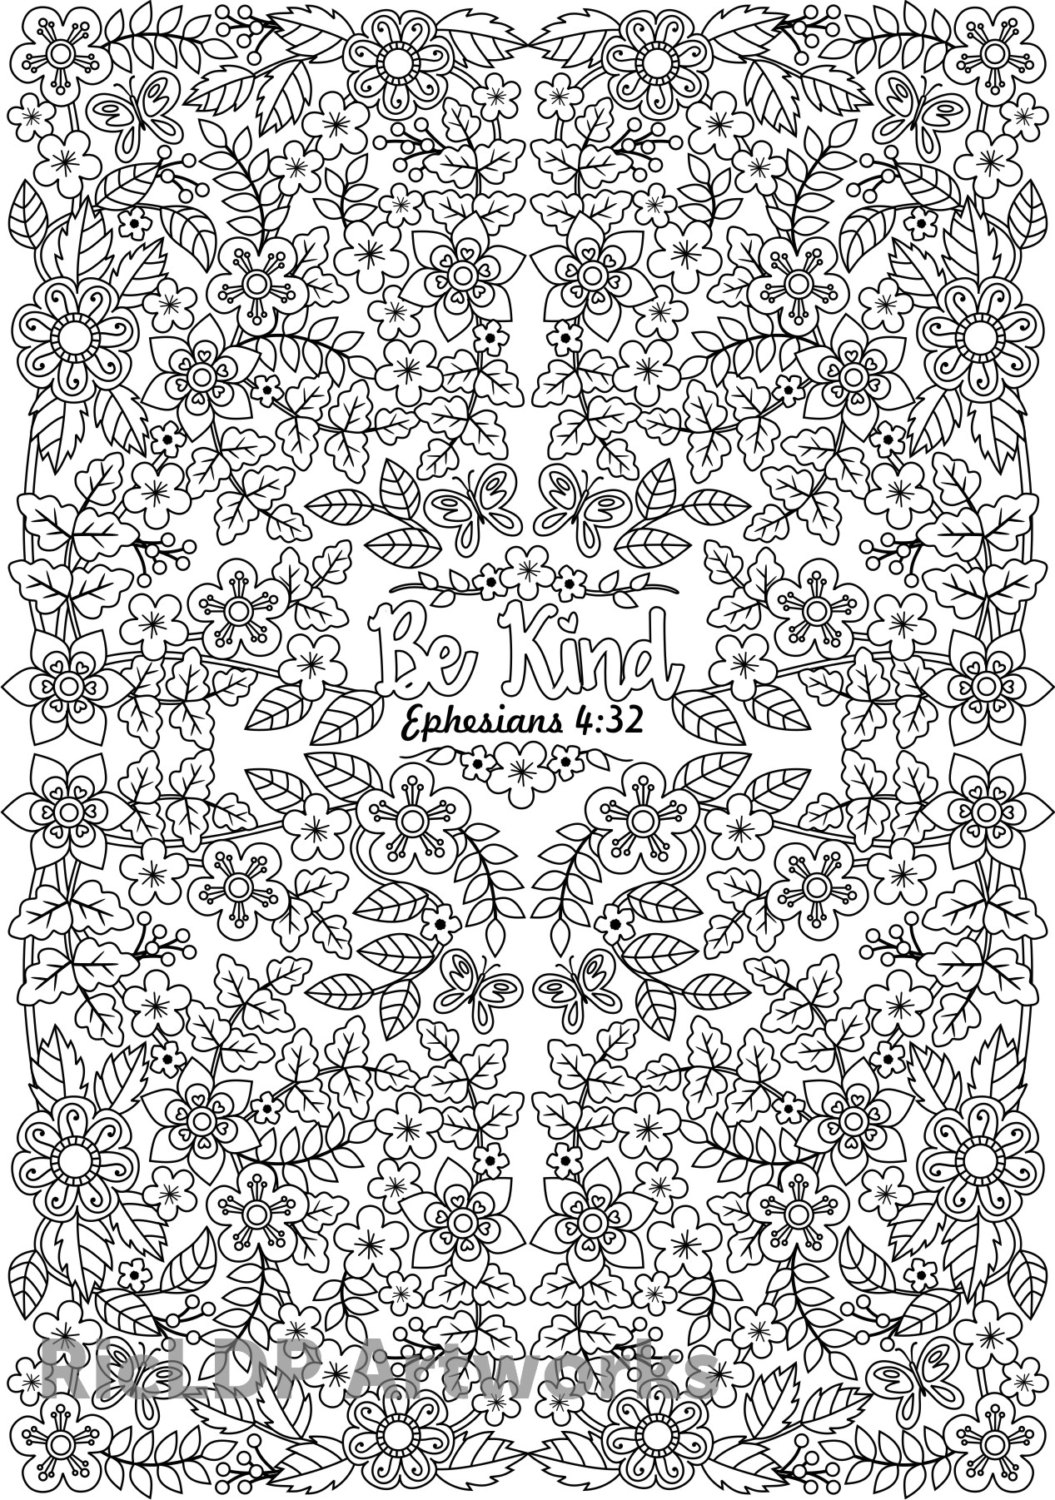 Bible Coloring Pages for Adults - Three Bible Verse Coloring Pages for Adults Printable